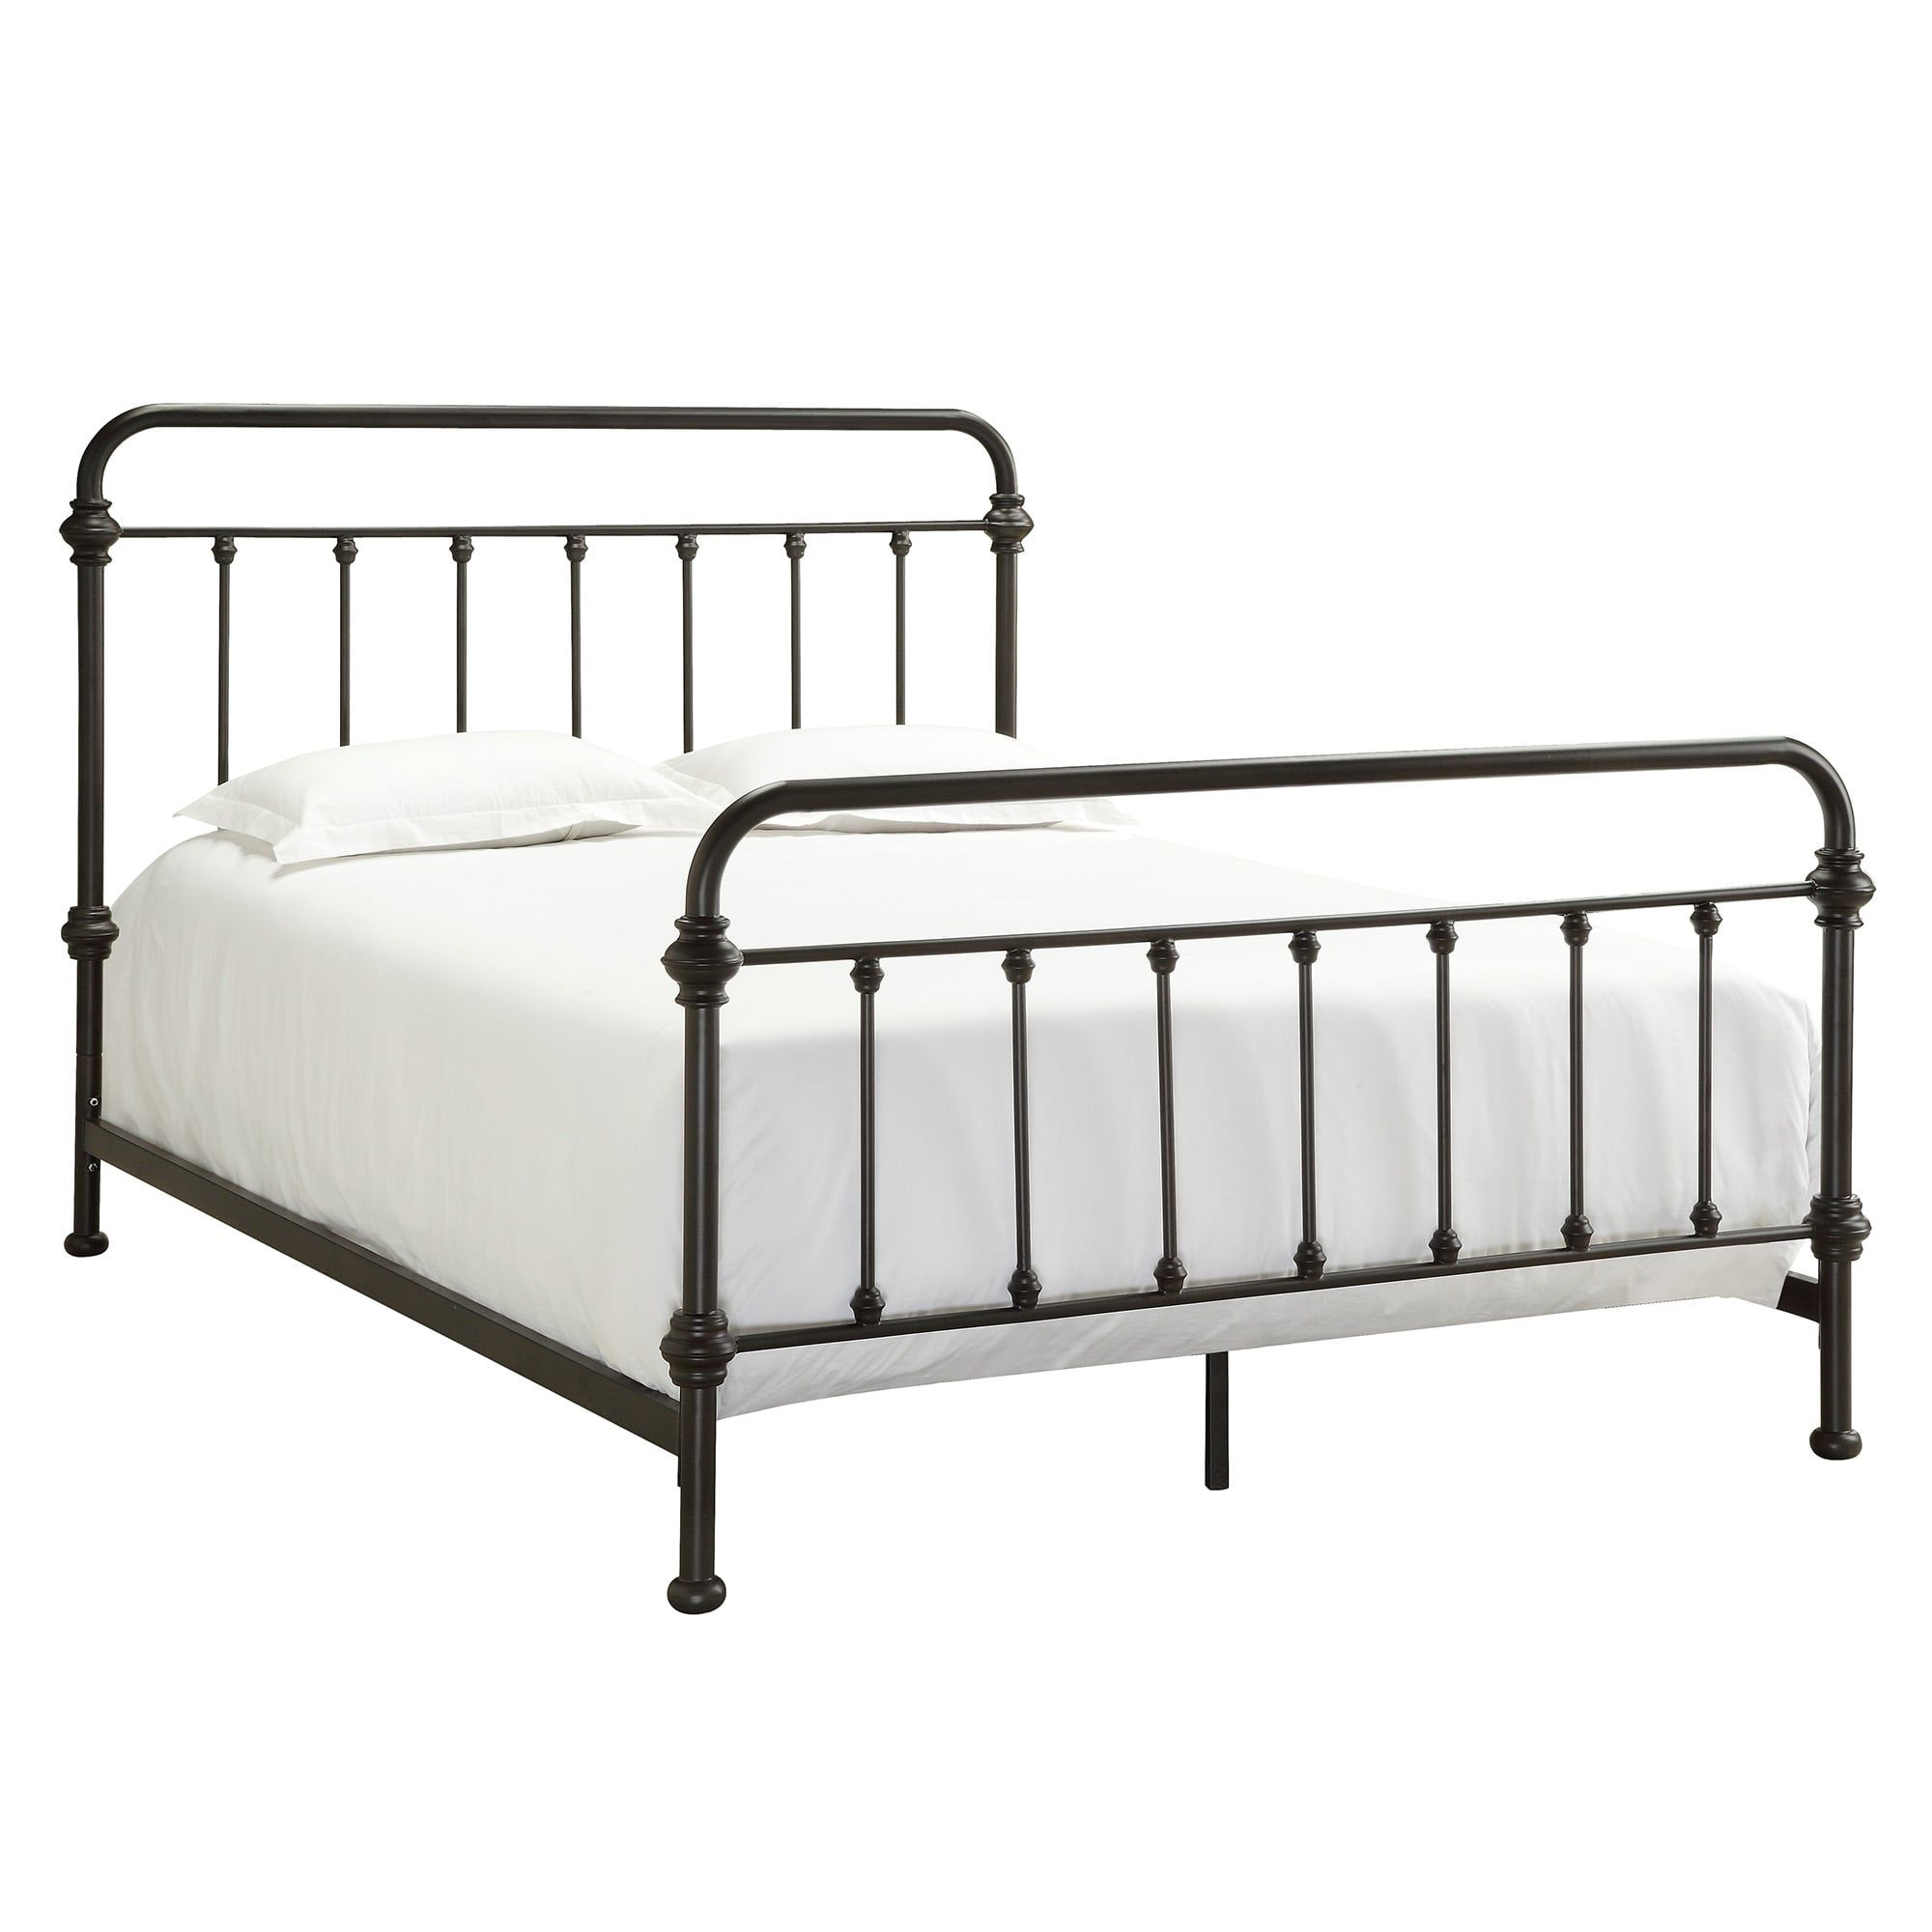 Home Metal Beds Wrought Iron Beds Murphy Bed Plans